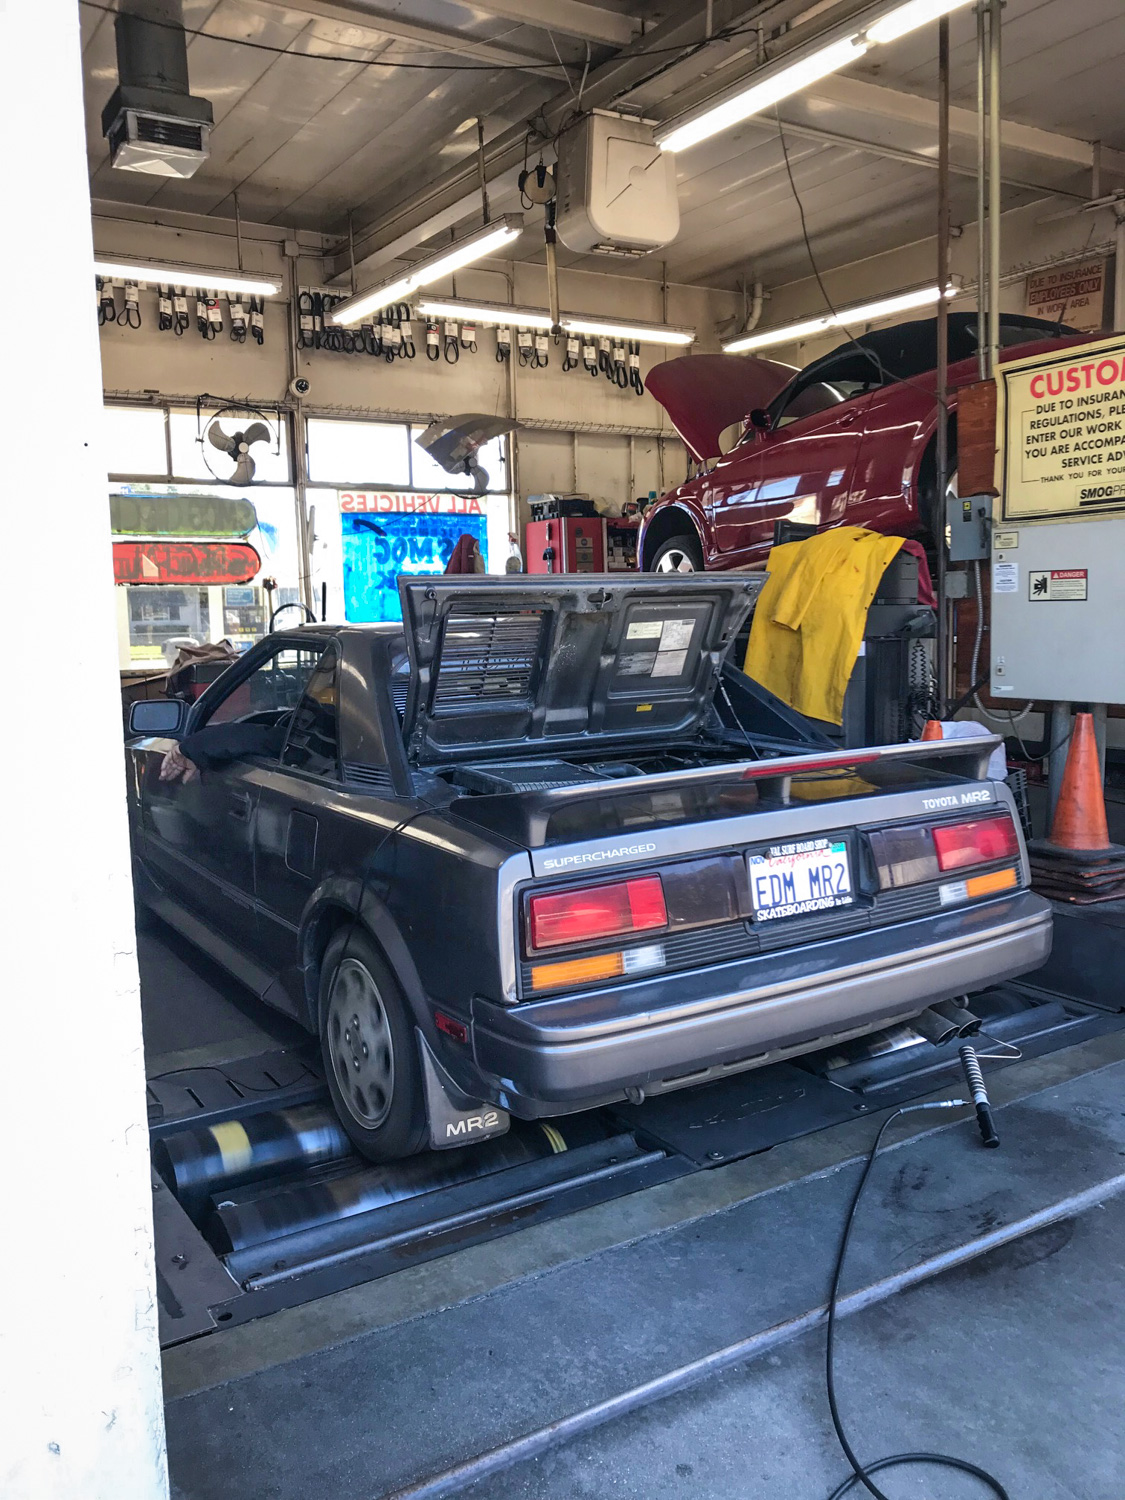 1988 Toyota MR2 chassis dyno rear